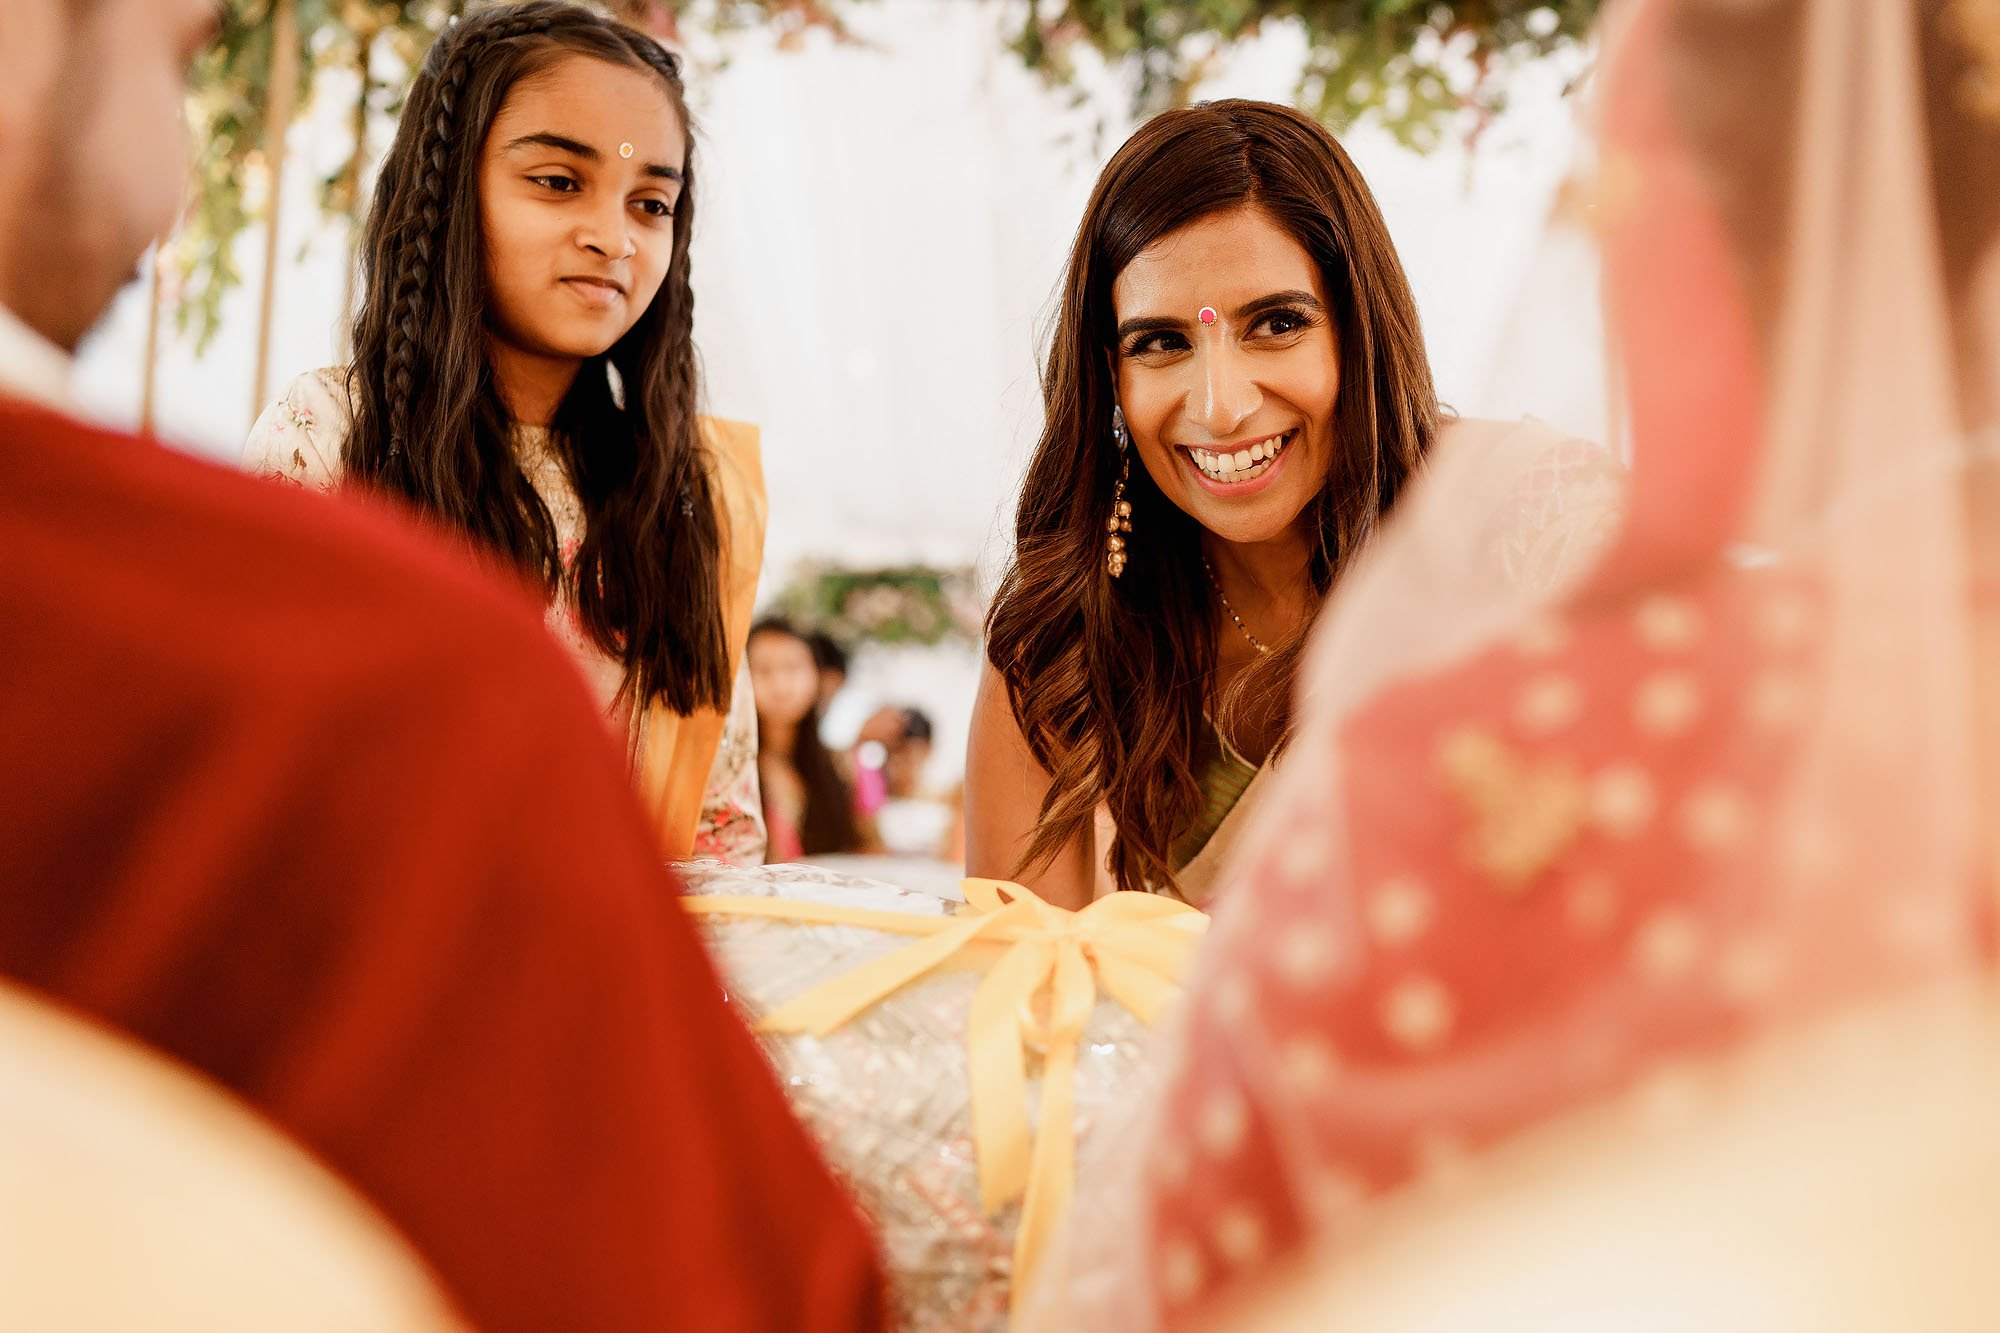 Amazing indian wedding photography at winstanley house leicester